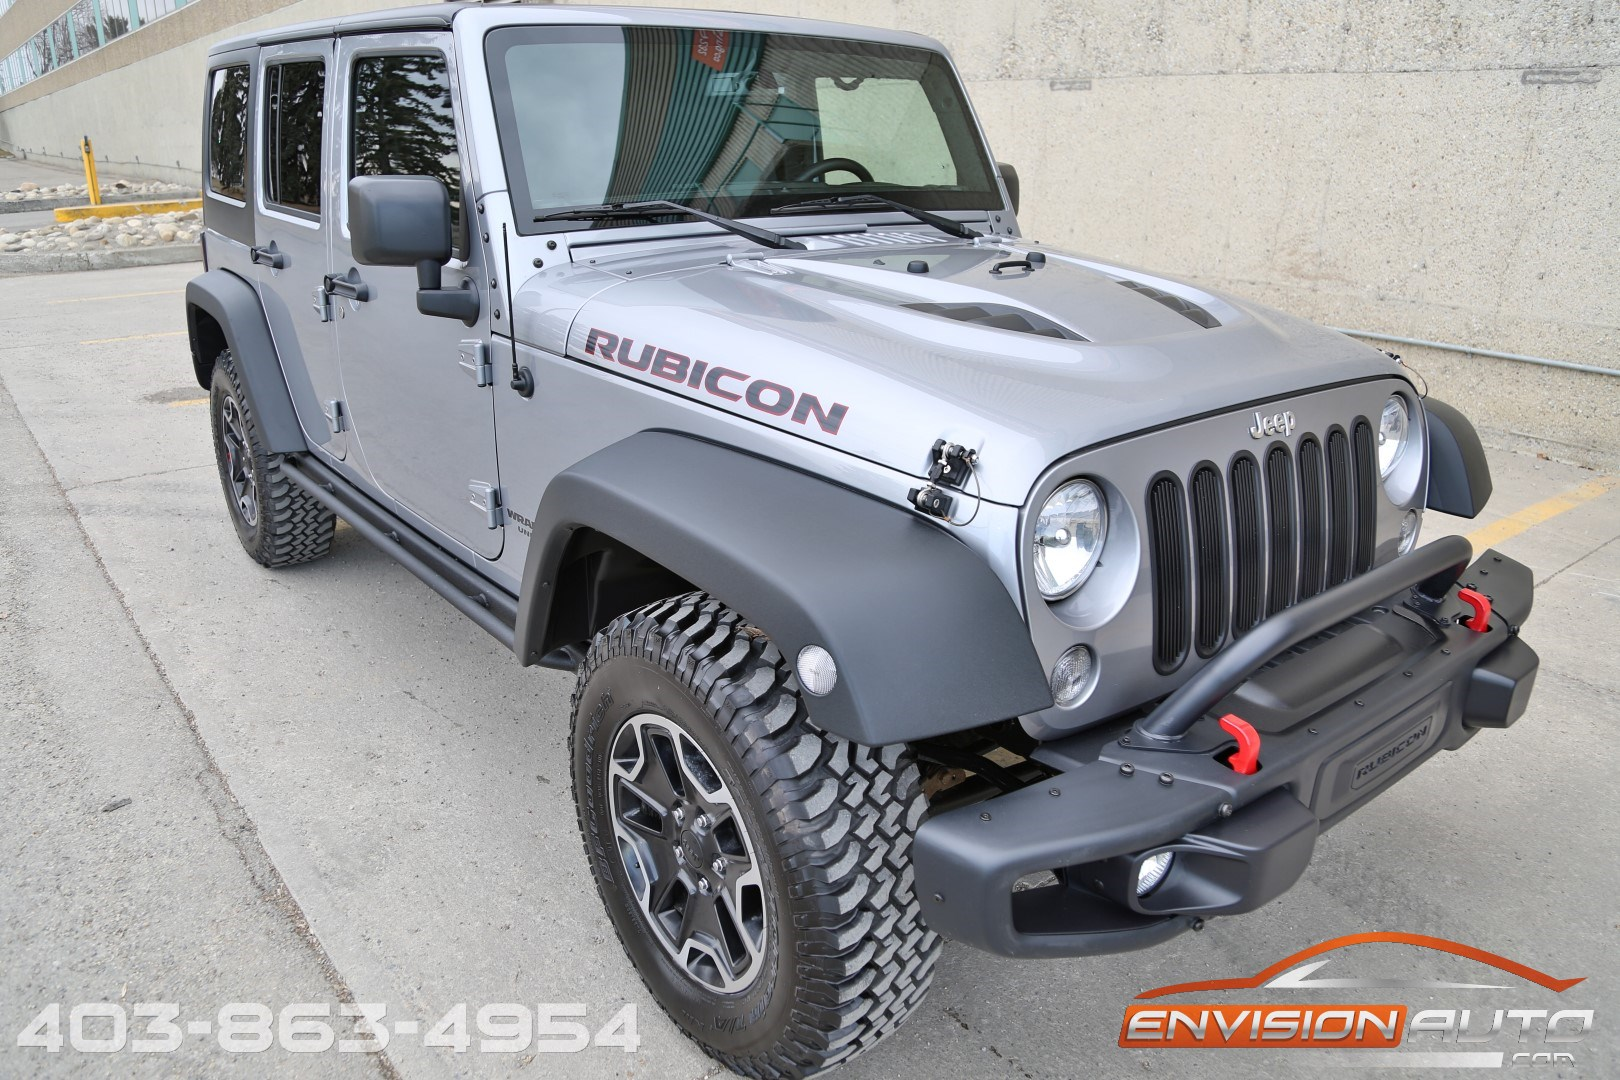 2012 Jeep Wrangler Unlimited Rubicon Owner Manual For Free .